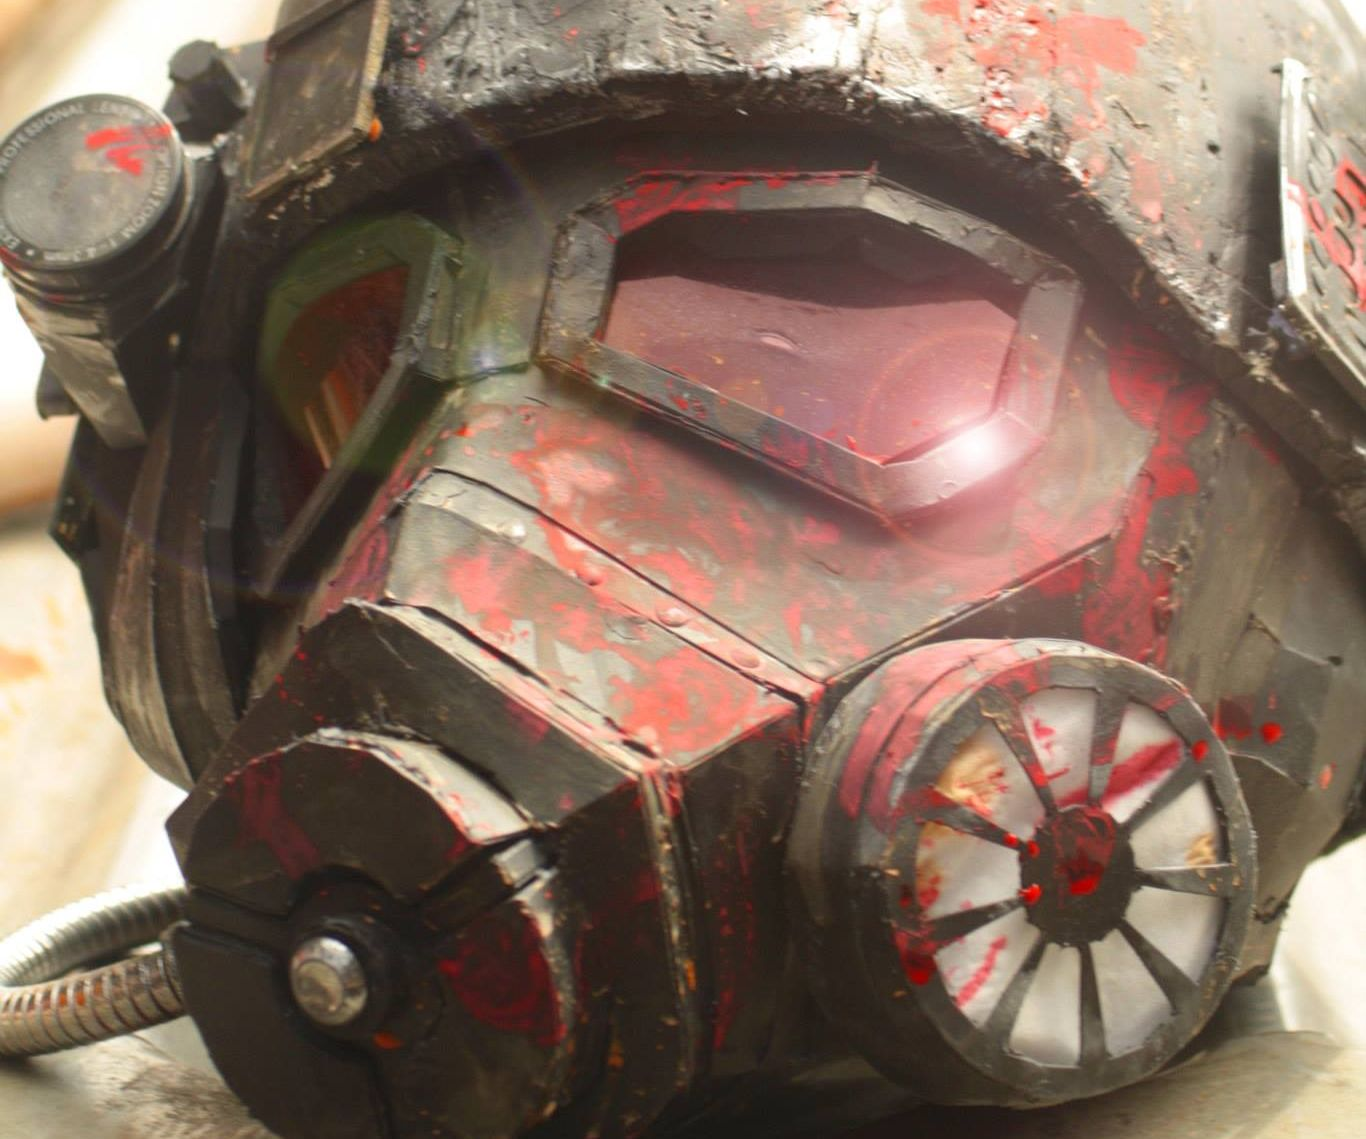 Fallout 2 Veterans helmet build